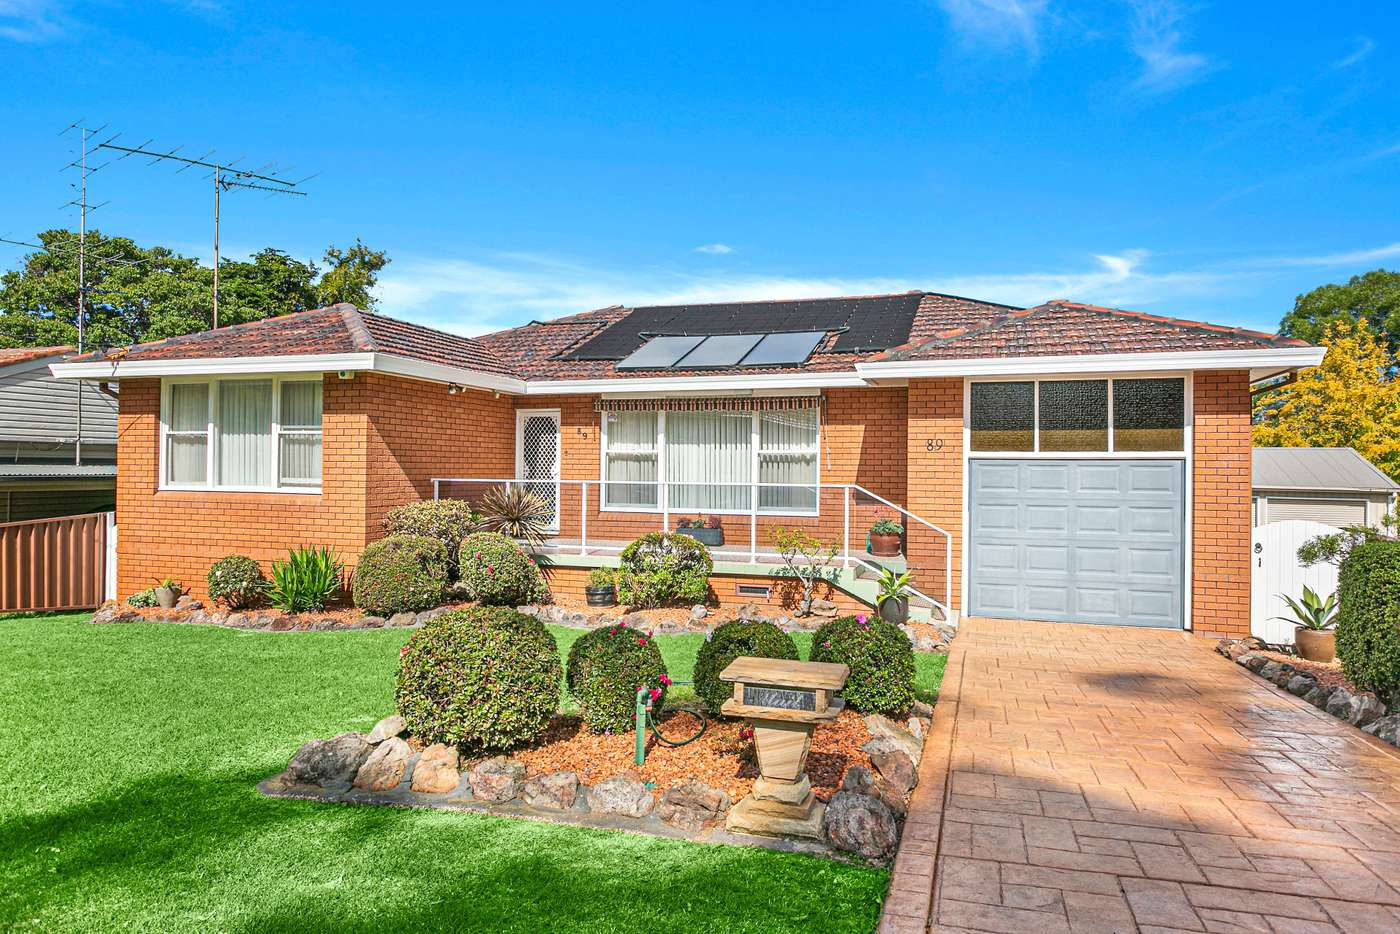 Main view of Homely house listing, 89 Murphys Avenue, Keiraville NSW 2500